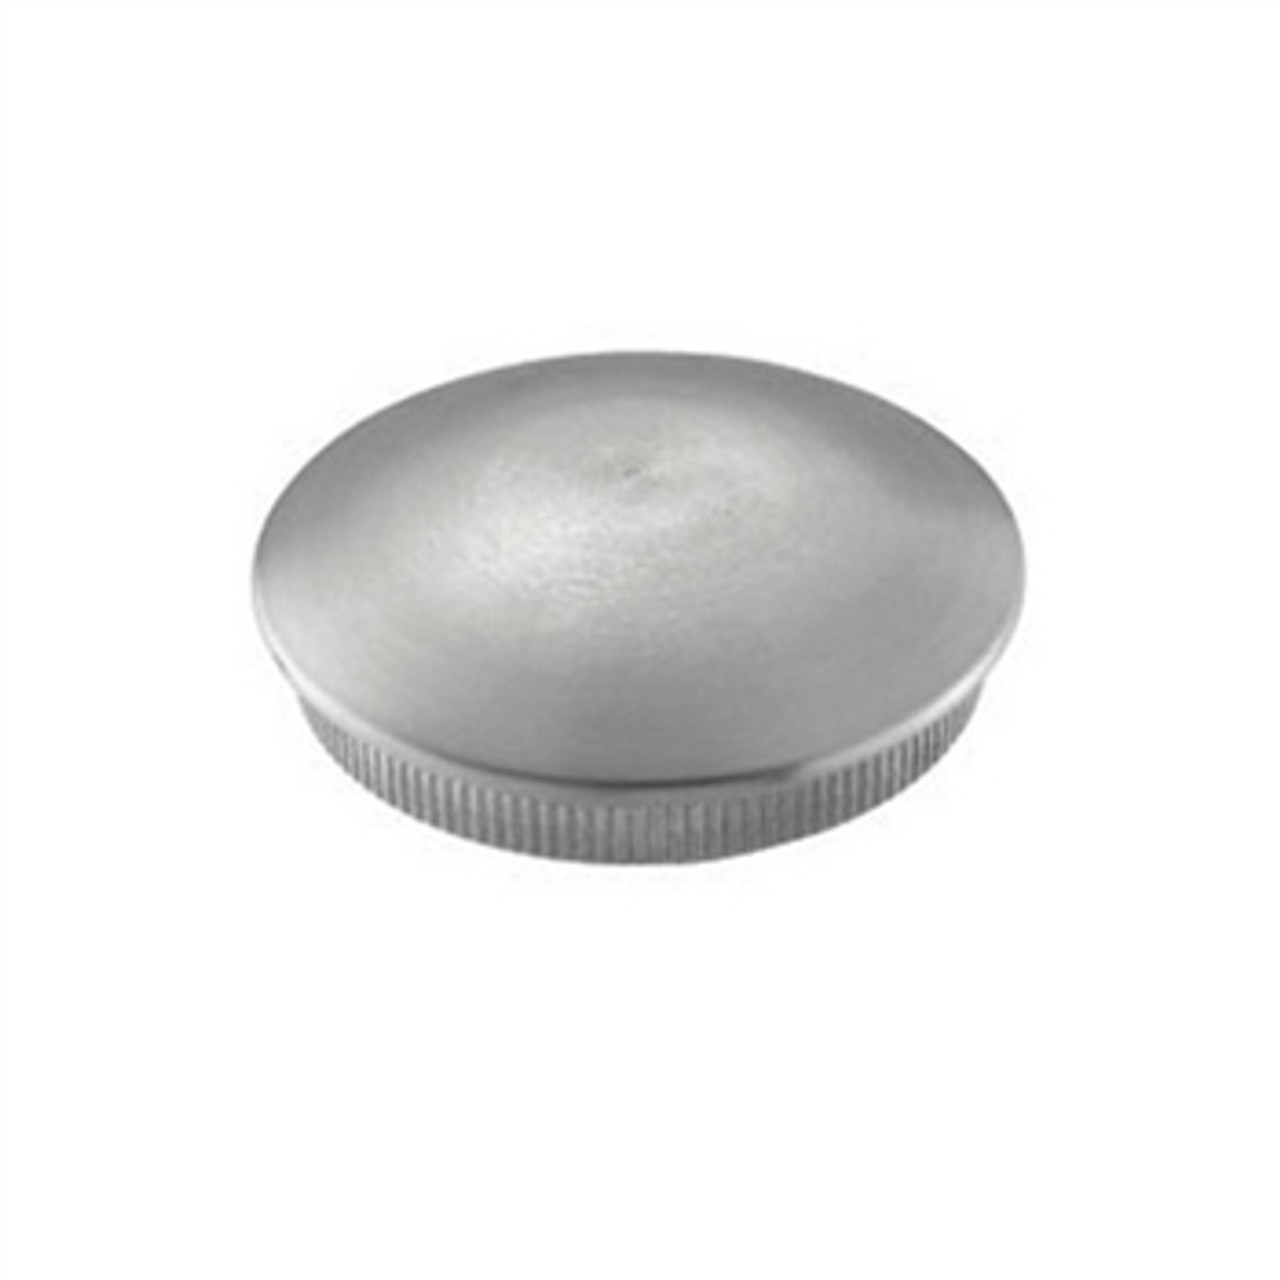 E01190 Stainless Steel End Cap Rounded